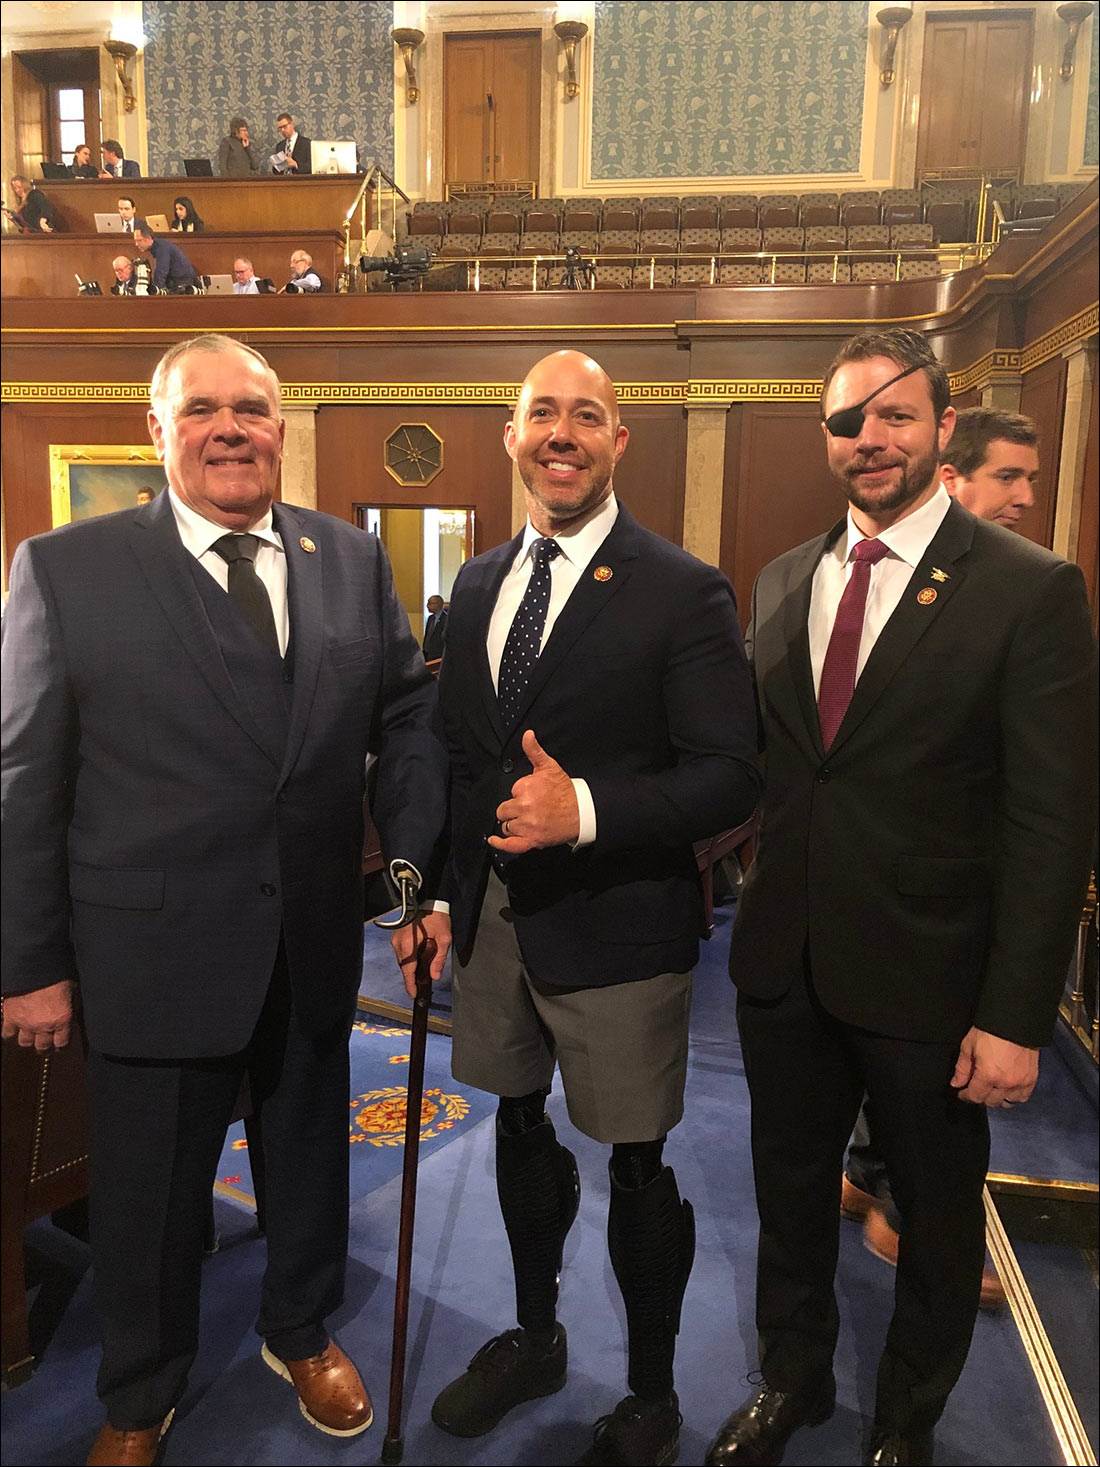 Amazing Photo Shows Three Purple Heart Veterans Recently Elected to Congress